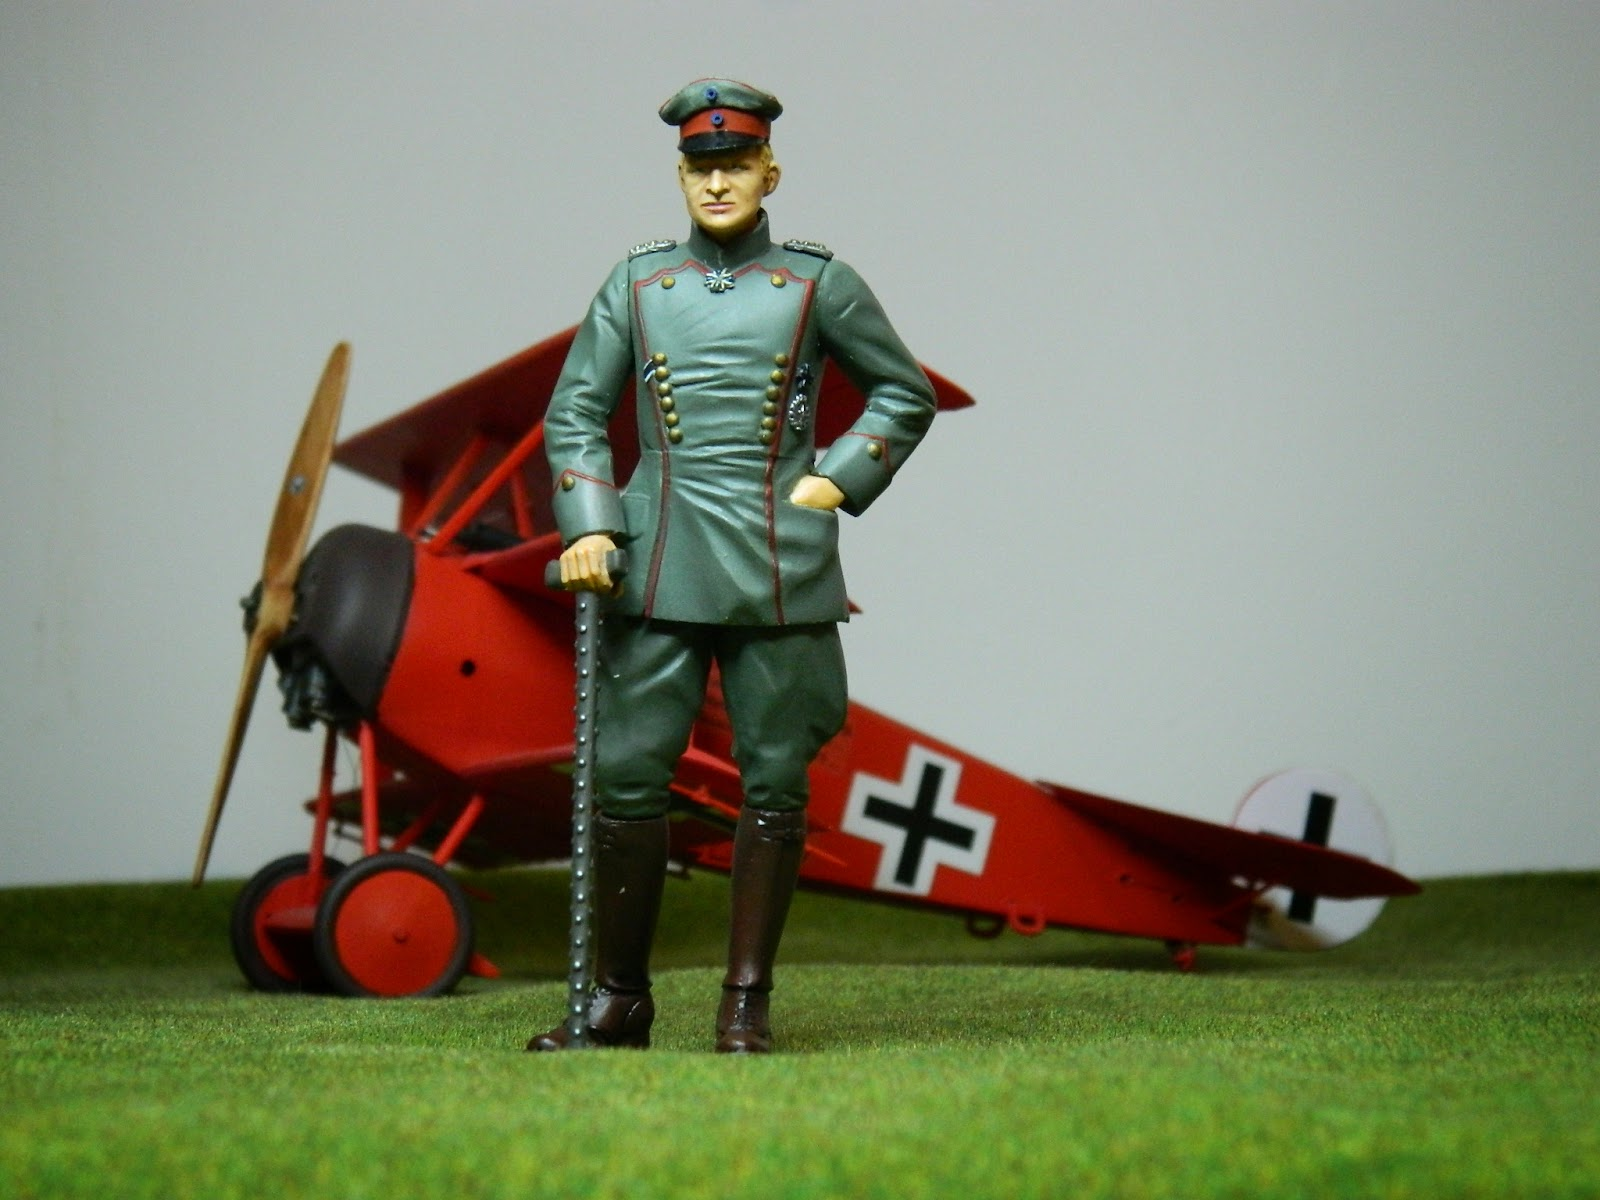 Mike's Modeling: The Red Baron, Manfred von Richthofen #2 ...